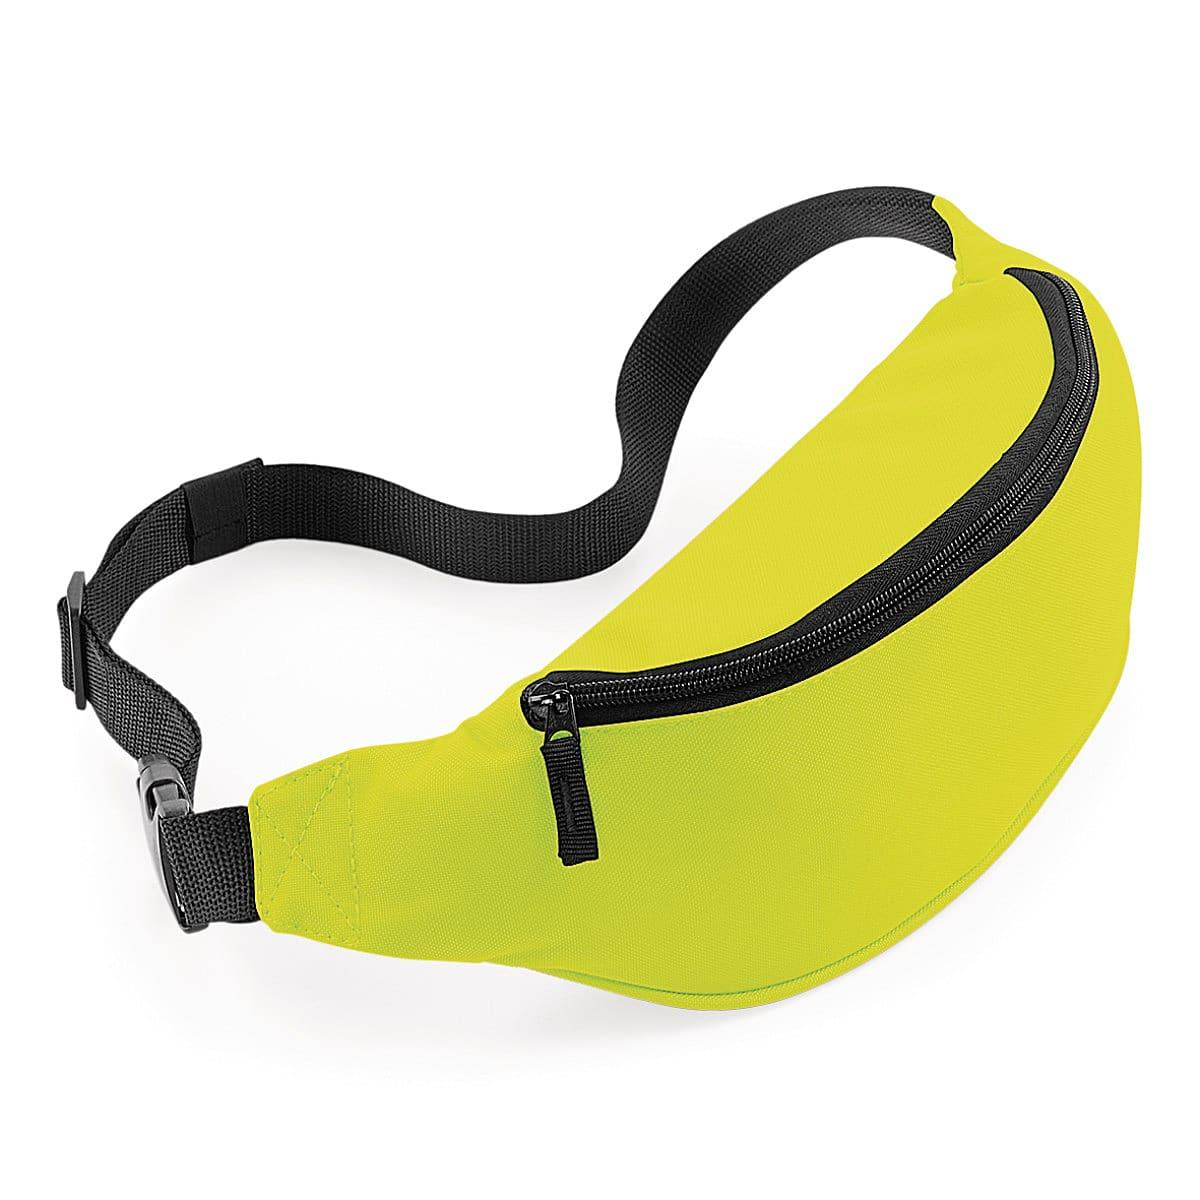 Bagbase Belt Bag in Fluorescent Yellow (Product Code: BG42)